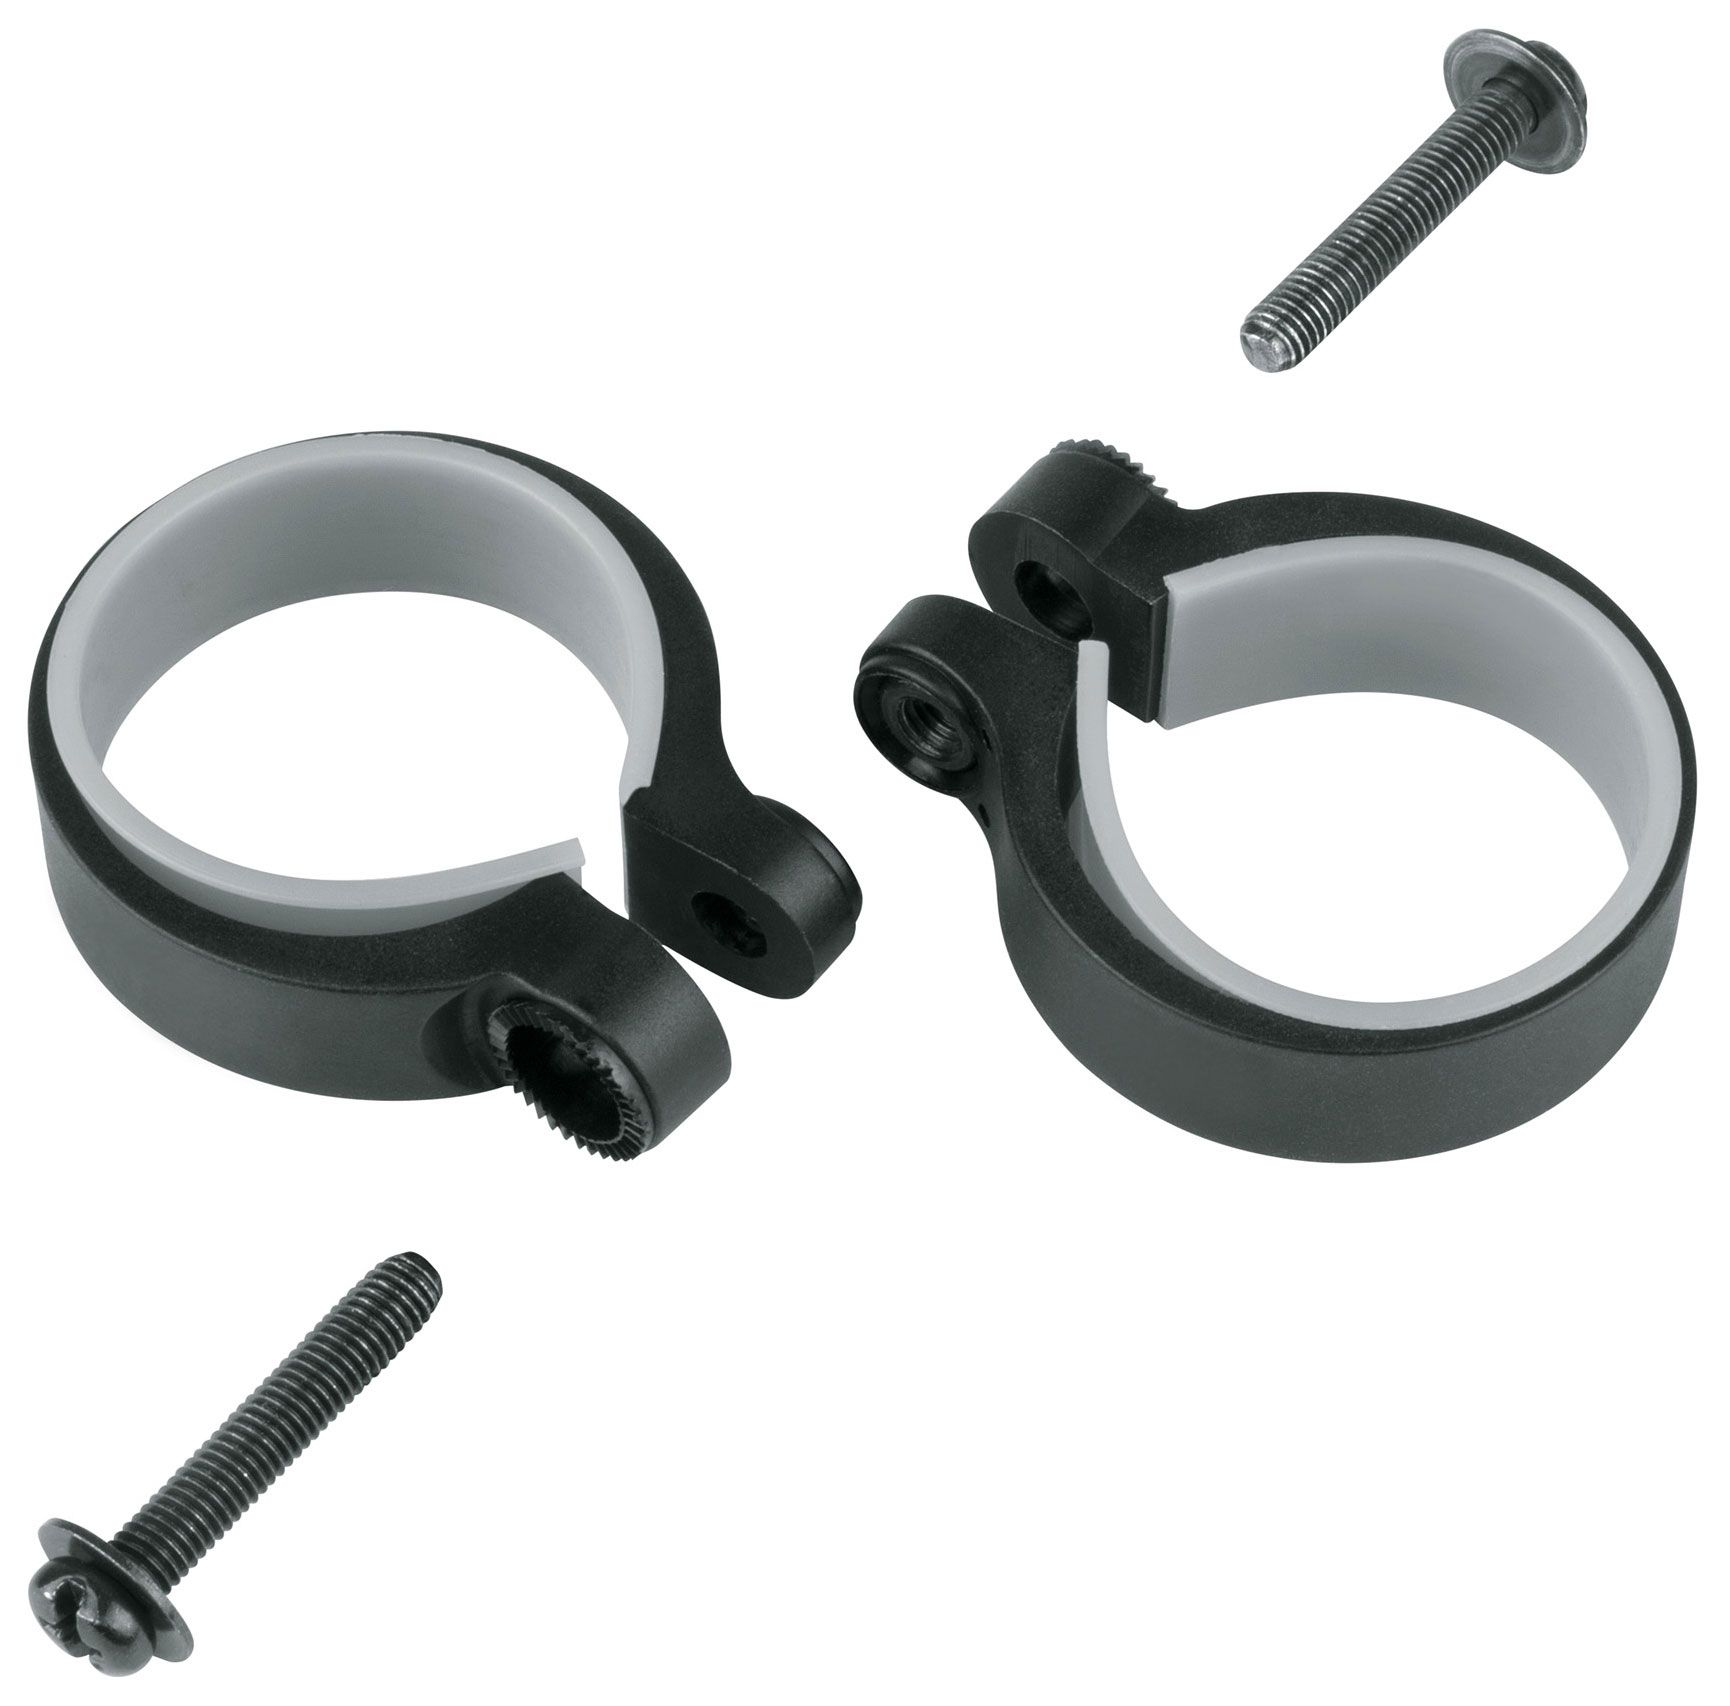 Запчасть SKS Stay Mounting Clamps 2 Pcs. 34,5 - 37,5Mm (SKS-11484)